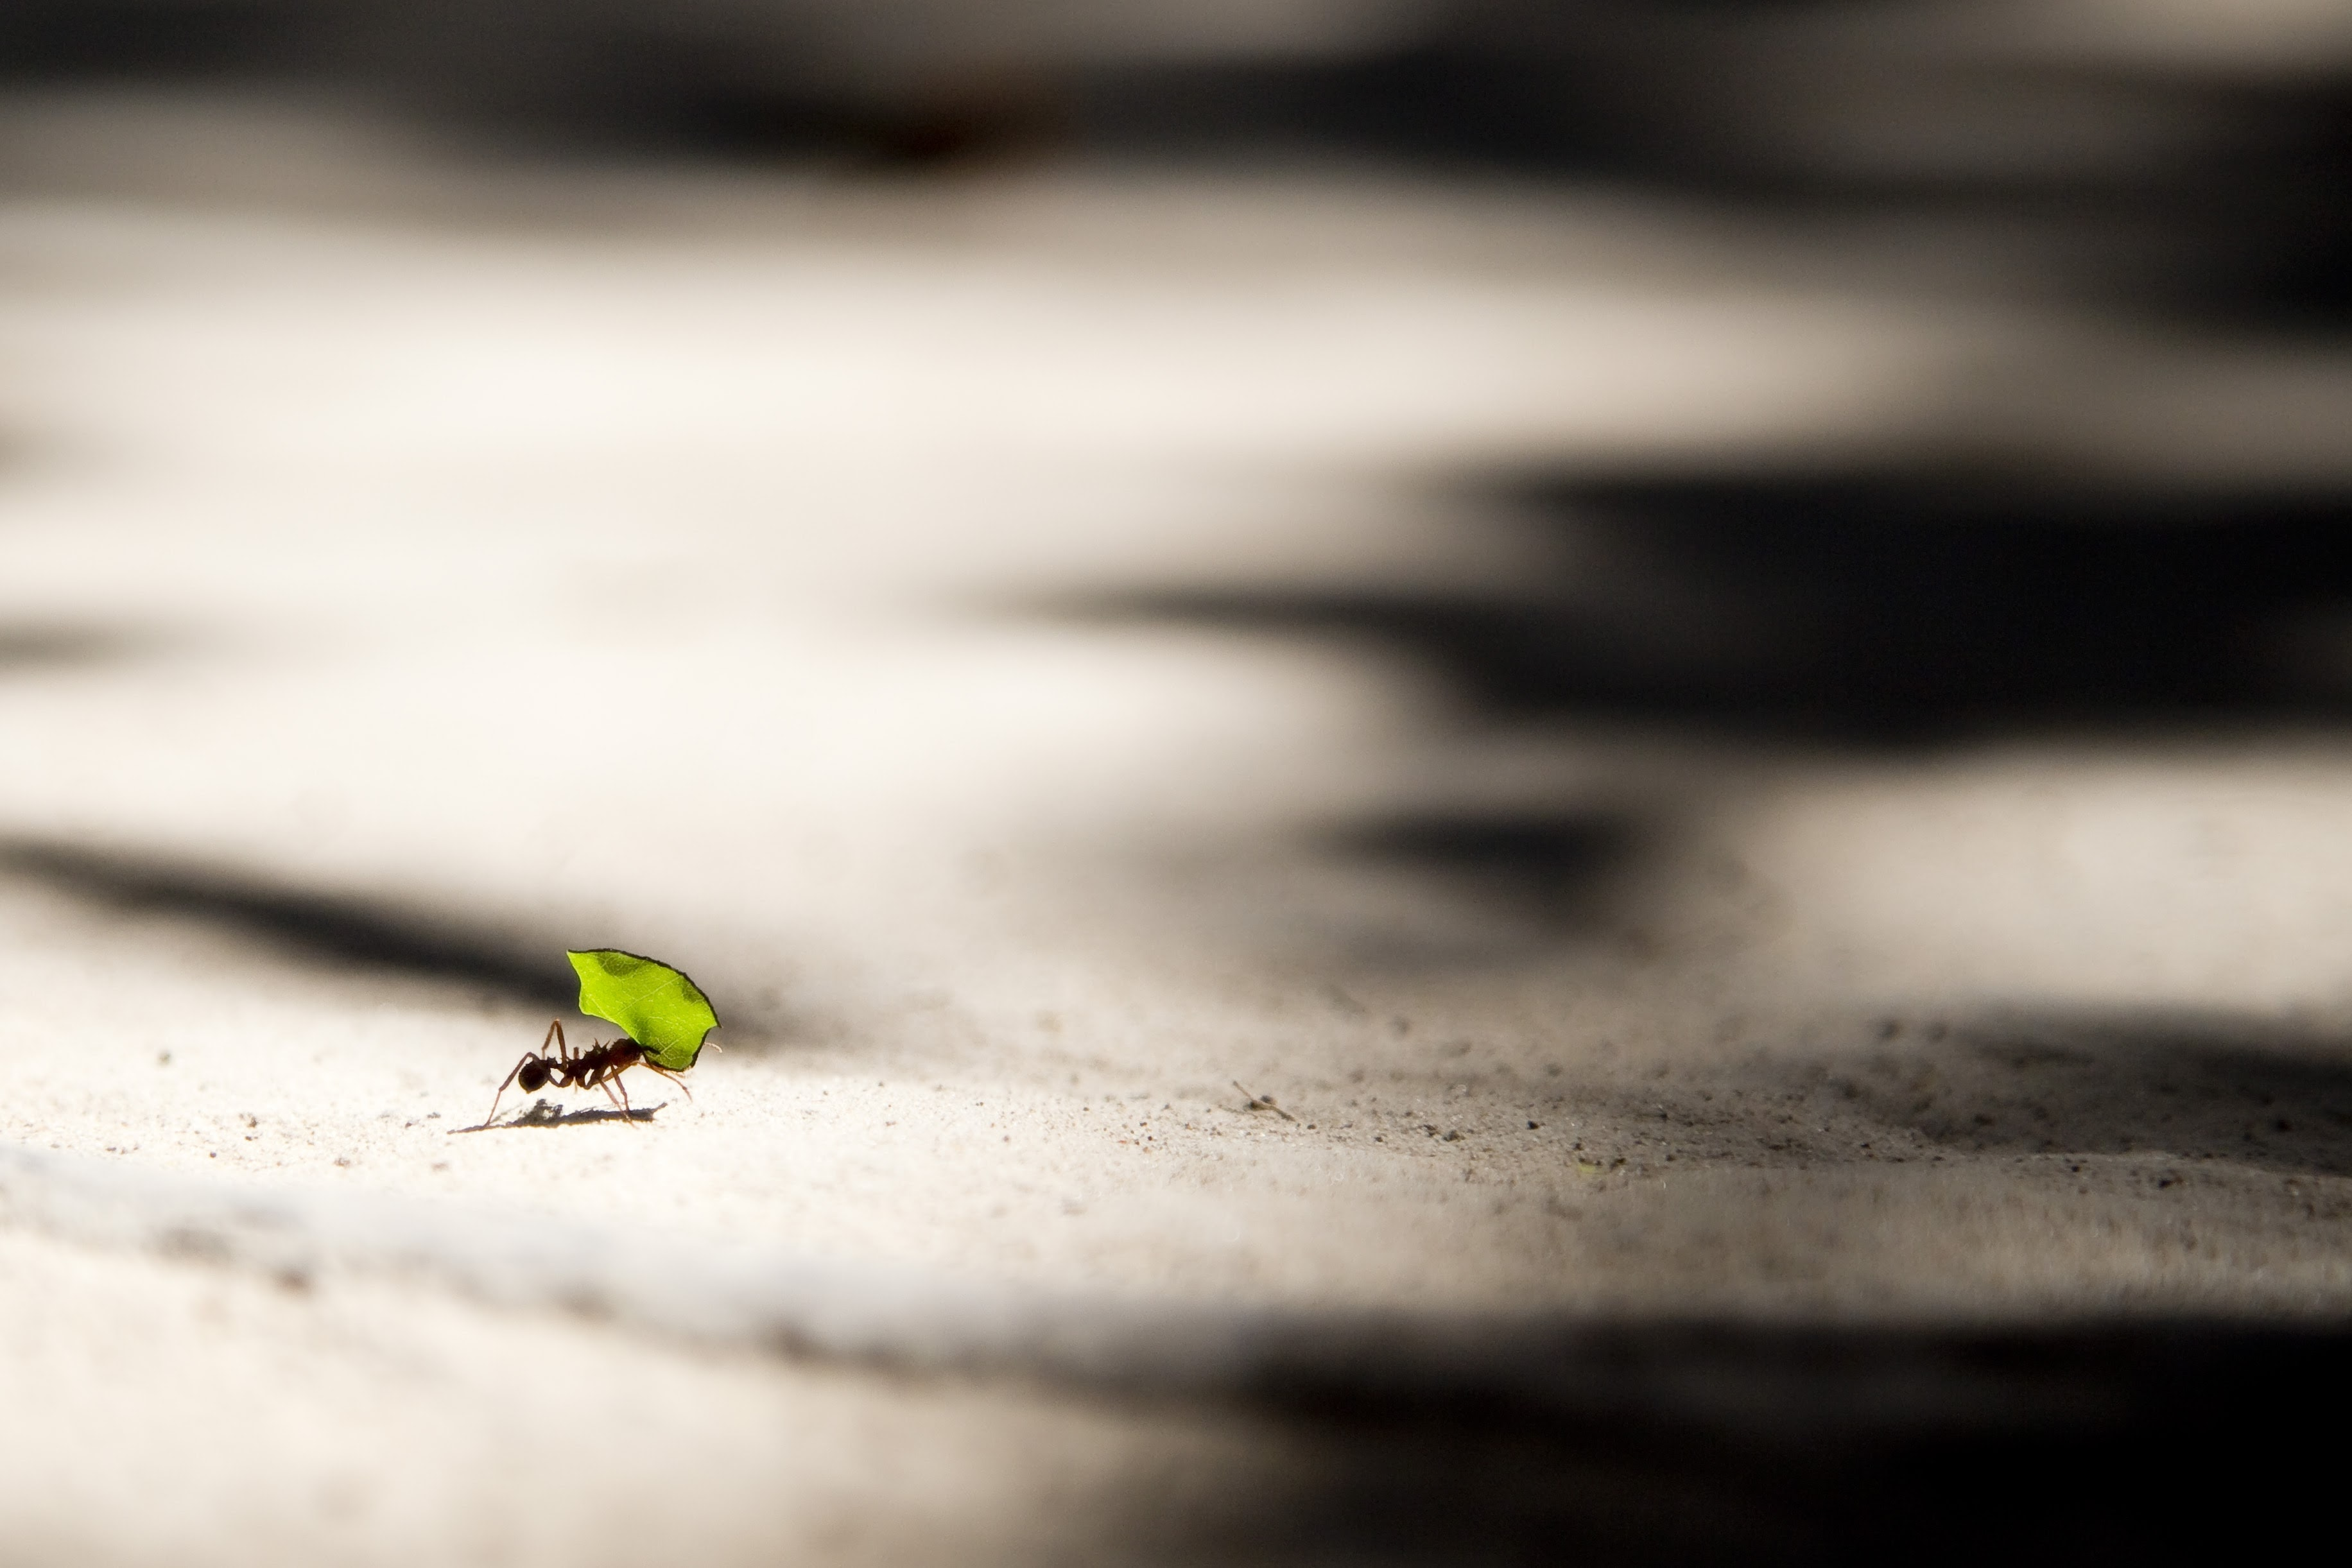 ant bite carrying leaf